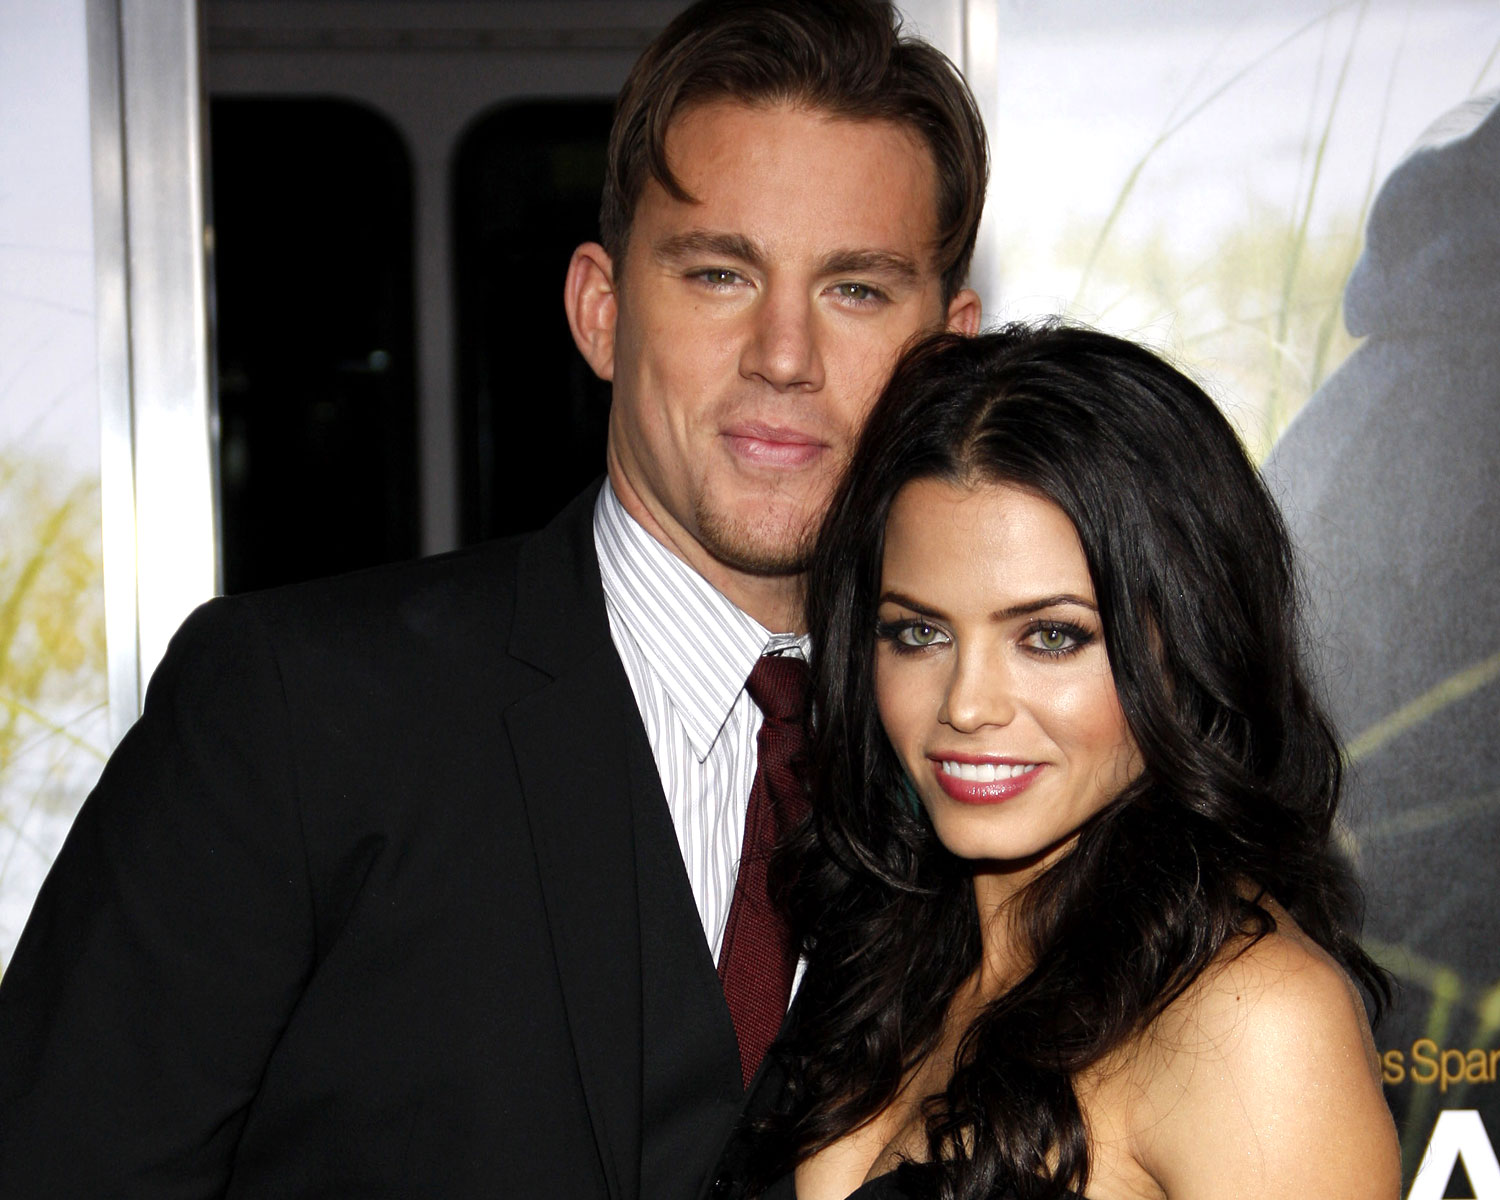 Jenna Dewan and Channing Tatum Went to Camp for Anniversary